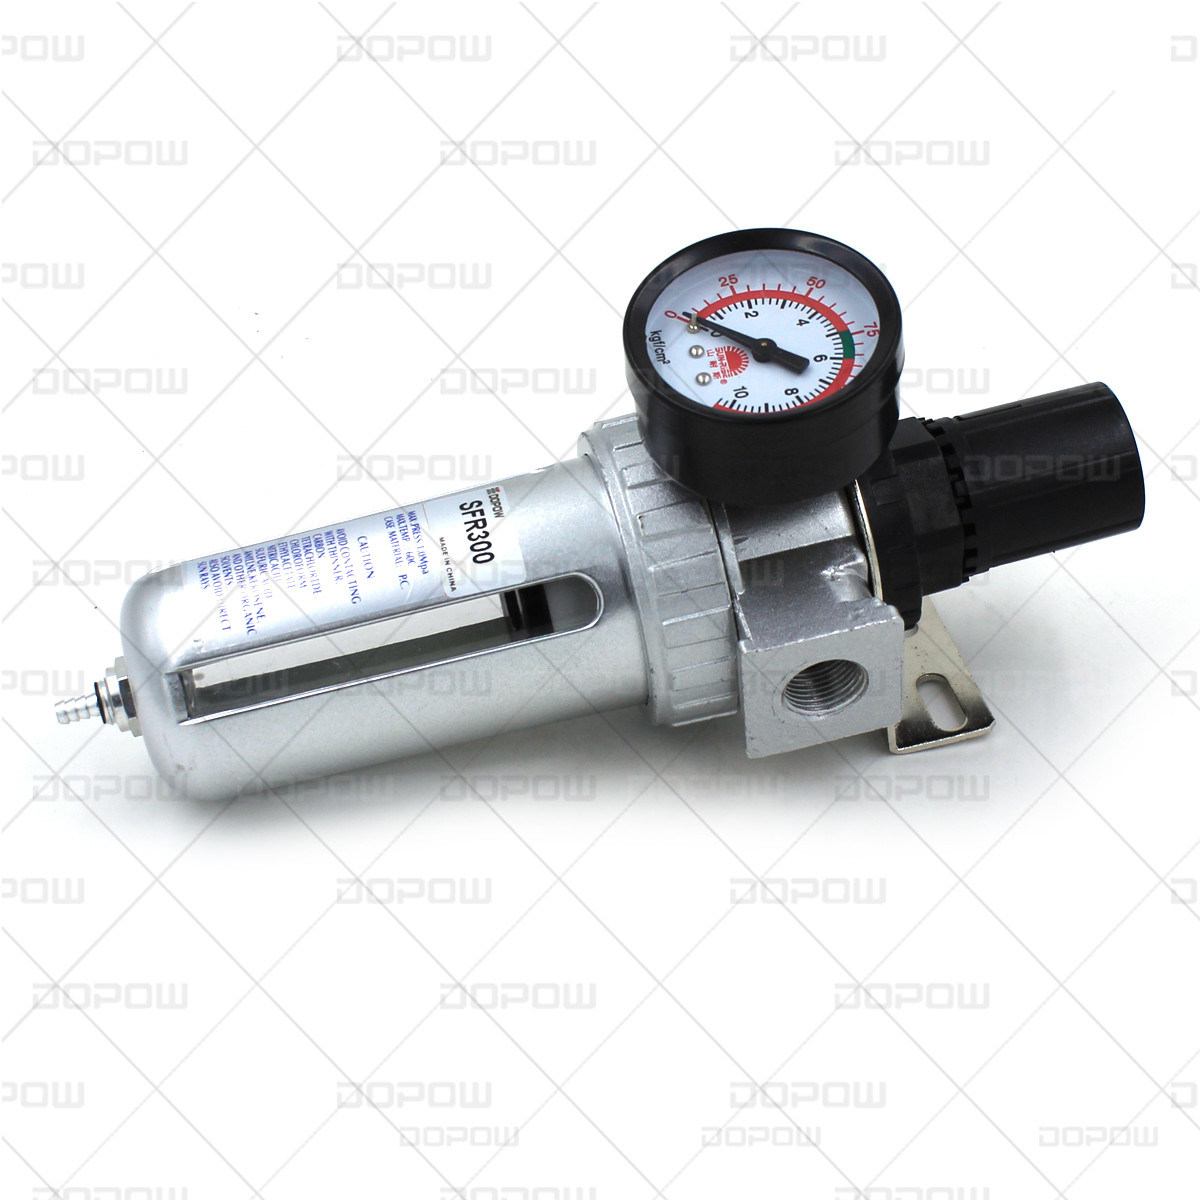 Dopow Sfr 300 Filter Regulator Pneumatic